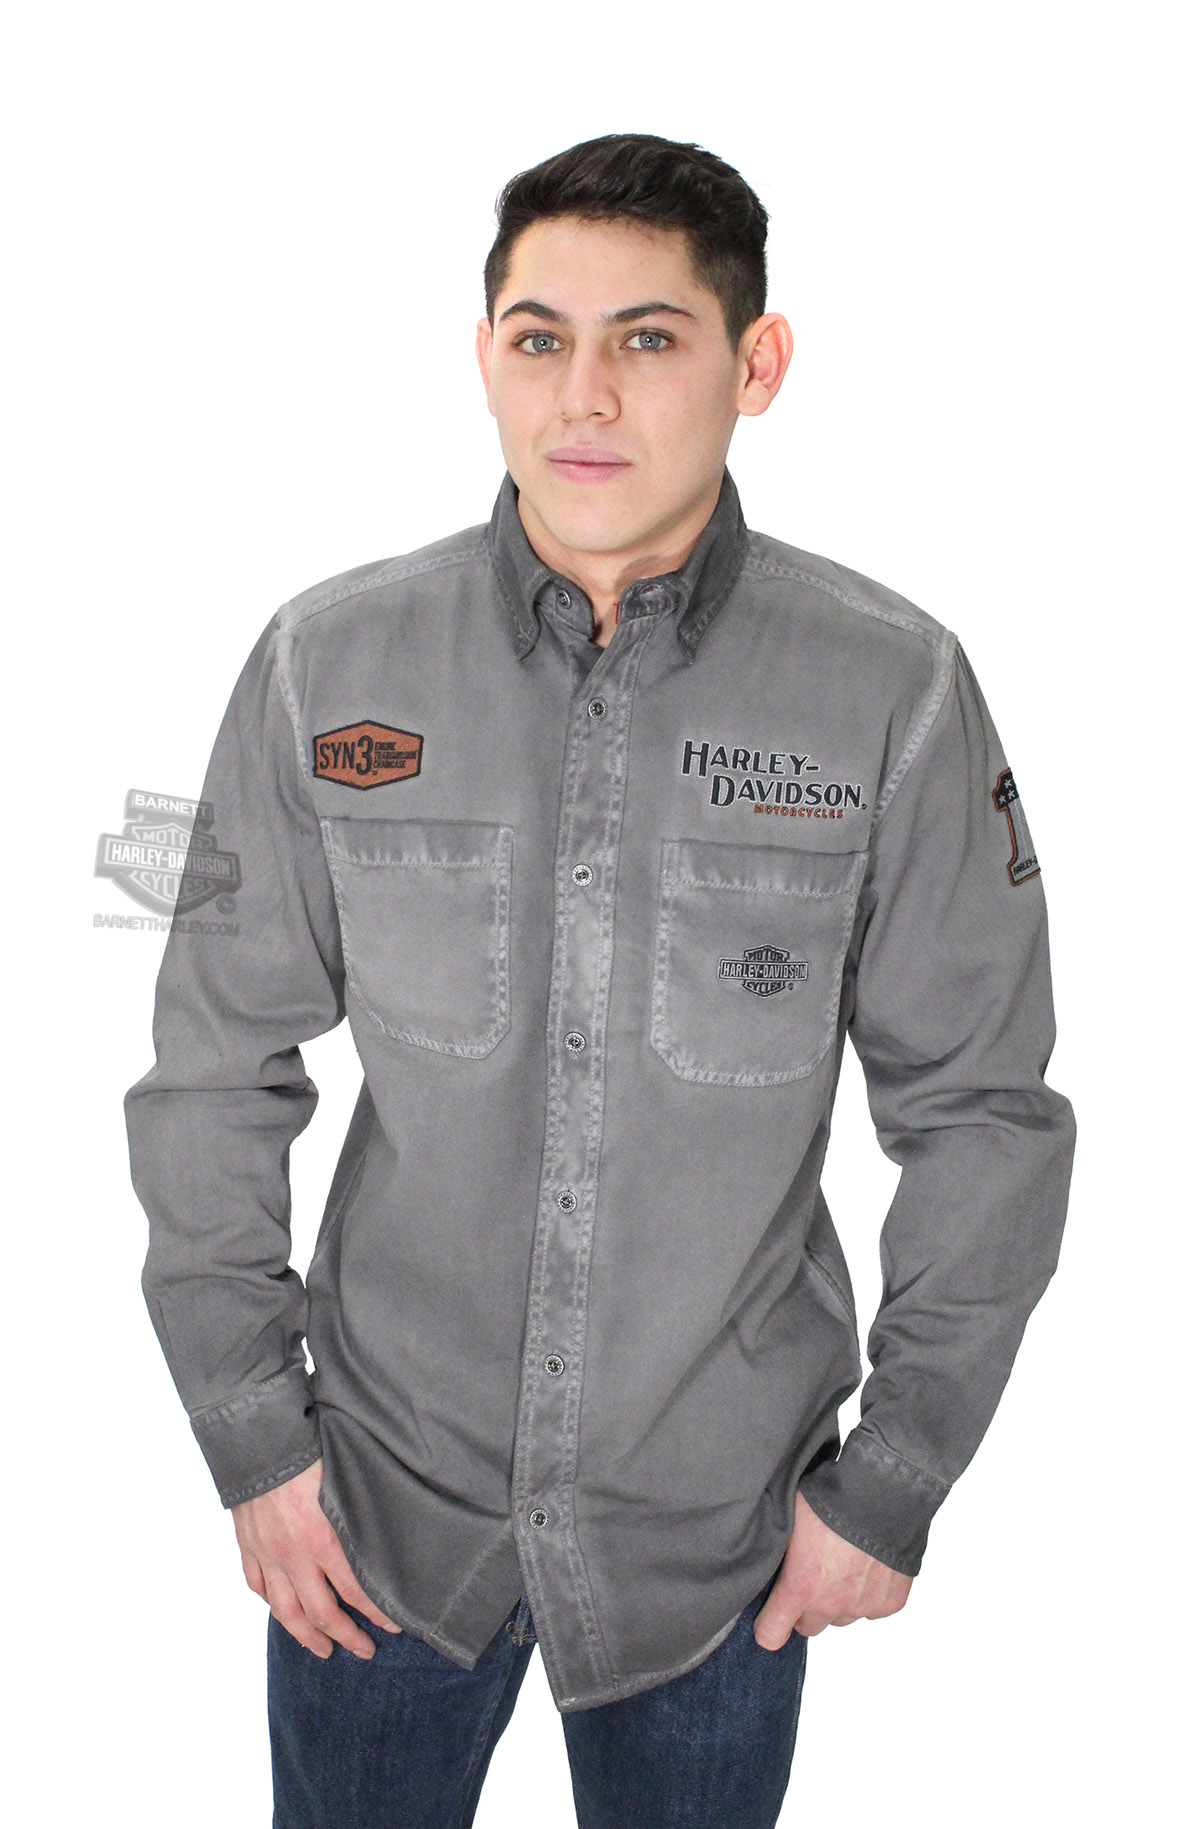 S04 Harley-Davidson Men/'s Black Grey Two-Tone Copper Block L//S Woven Shirt